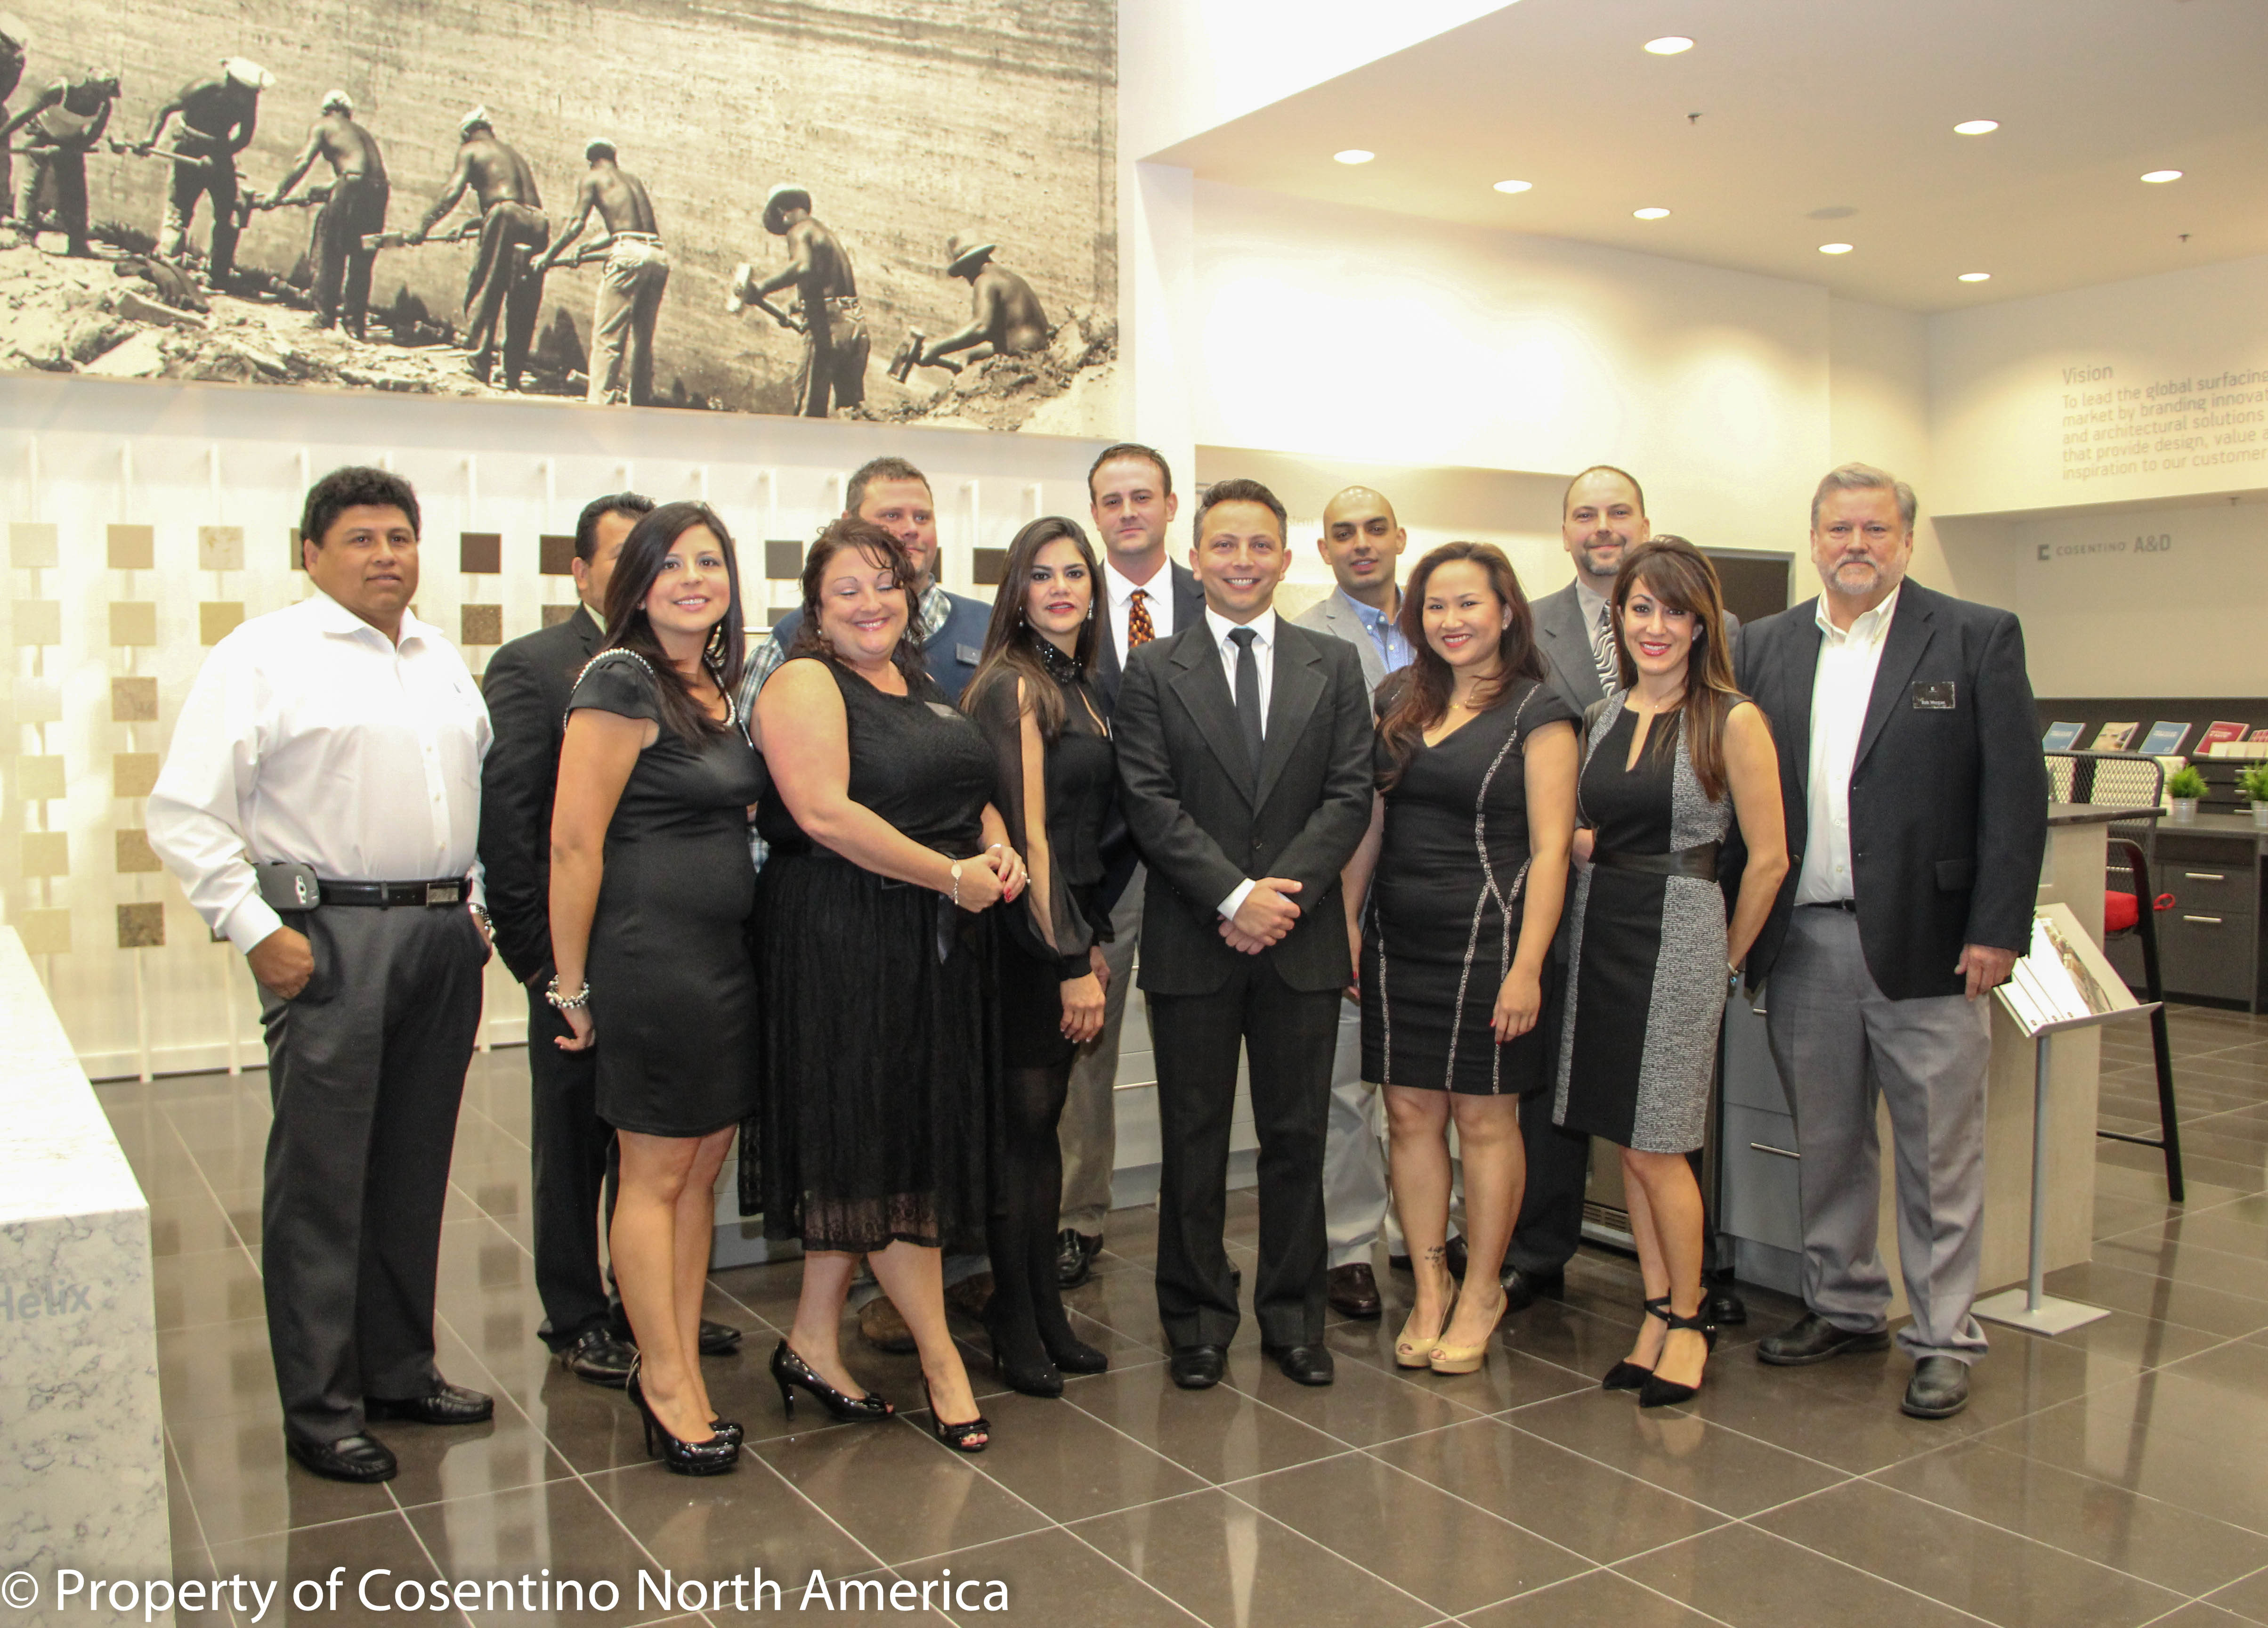 last thursday cosentino the global leader in natural stone quartz and recycled surfacing opened its th north american cosentino center in houston